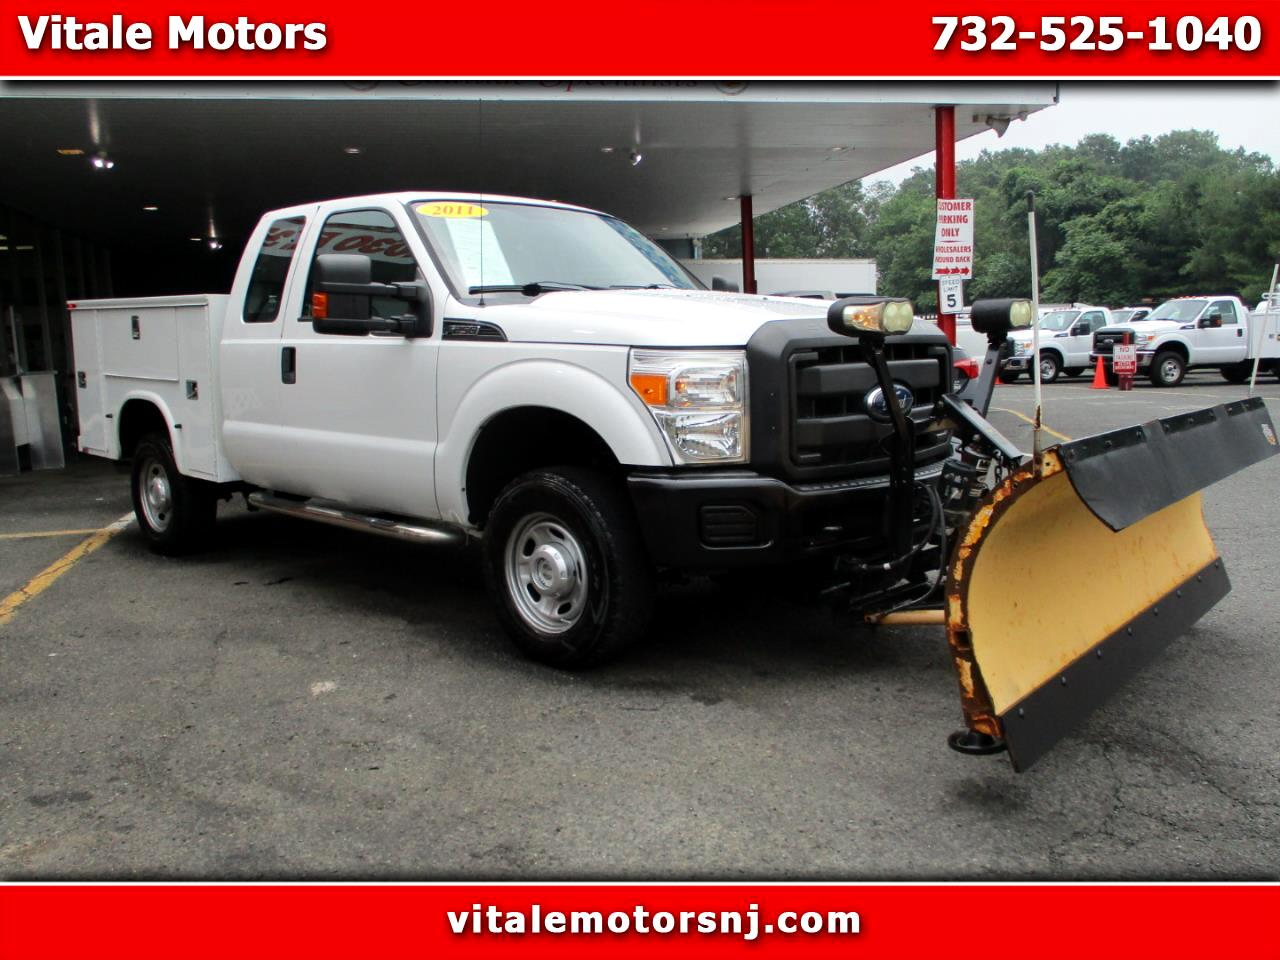 2011 Ford F-250 SD SUPER CAB 4X4 UTILITY BODY W/ SNOW PLOW